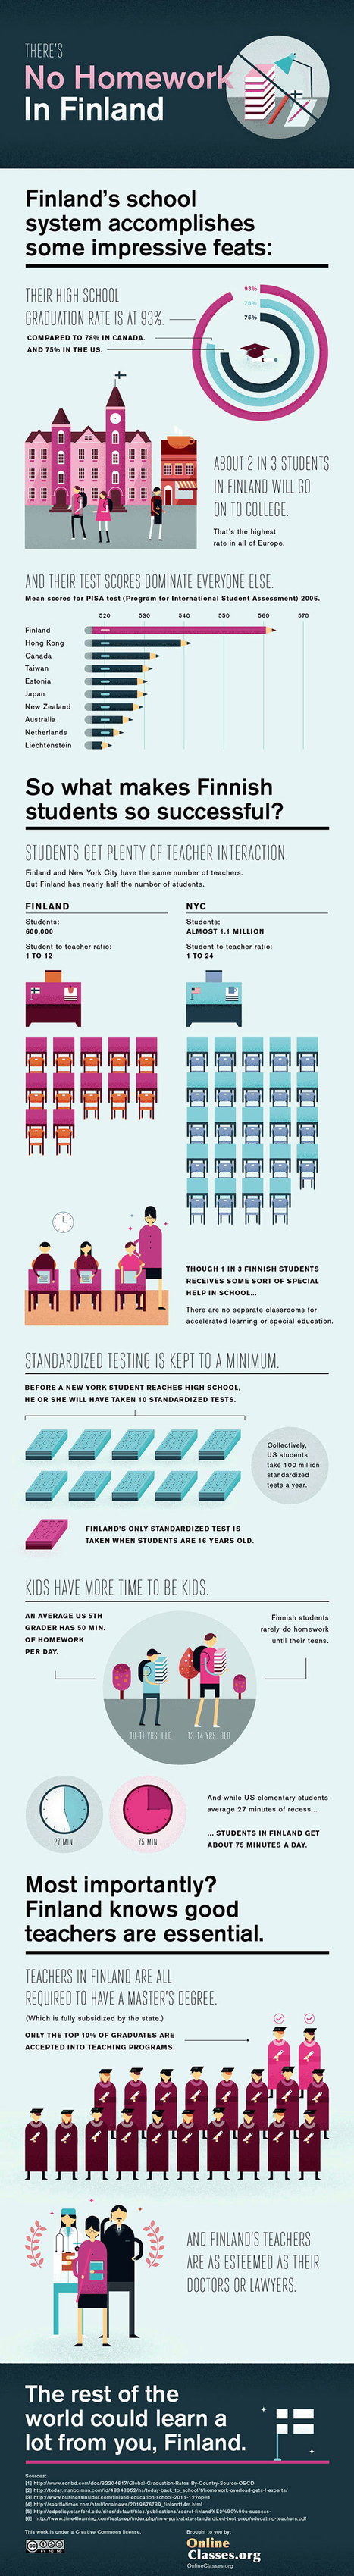 Finland's School System - Infographic | Intercultural Learning by Senior Volunteering | Scoop.it